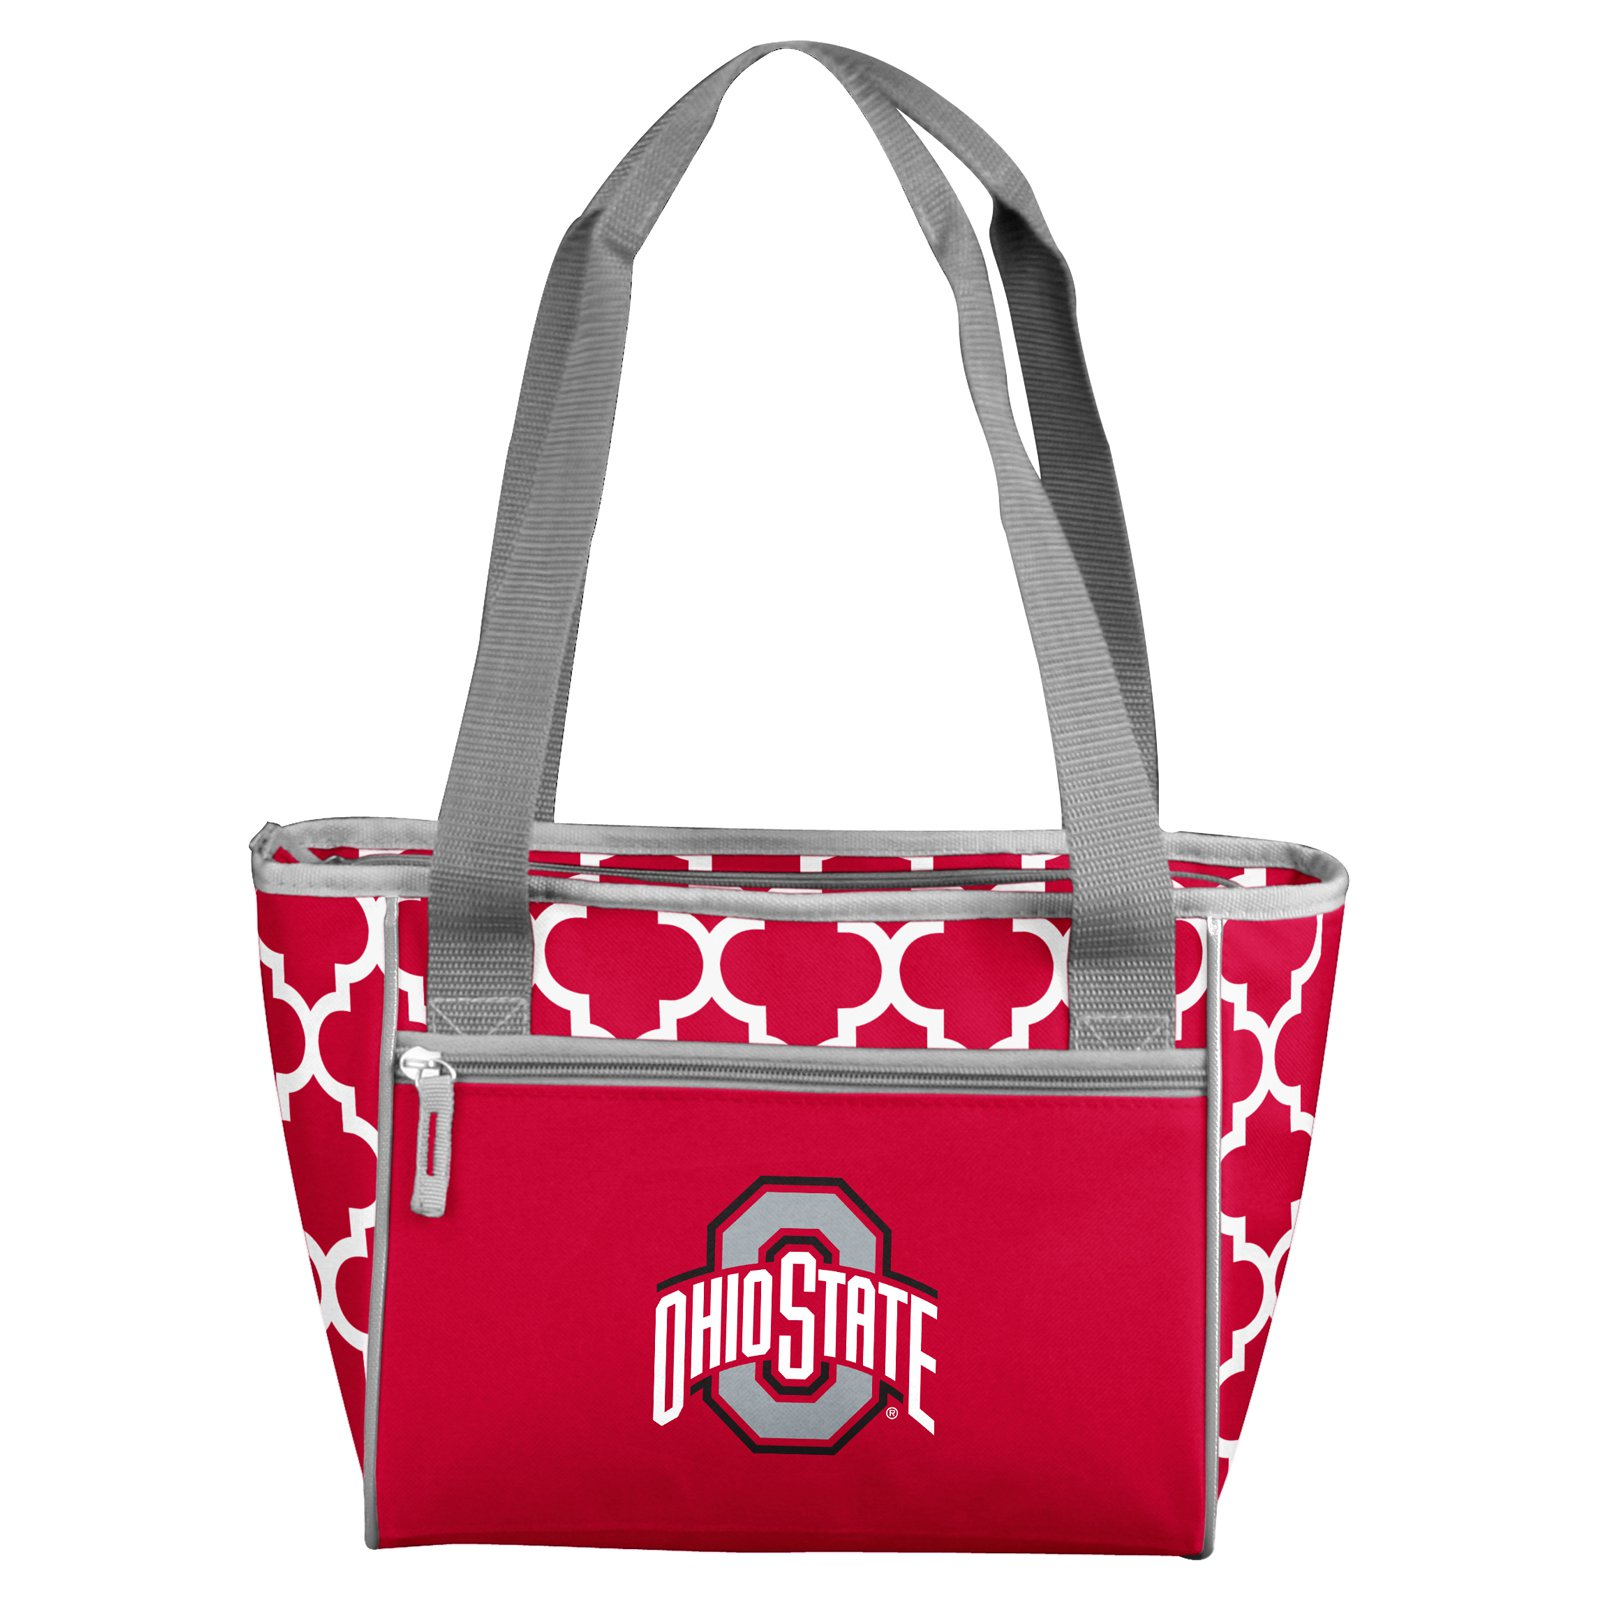 Ohio State Buckeyes Quatrefoil 16 Can Cooler Tote